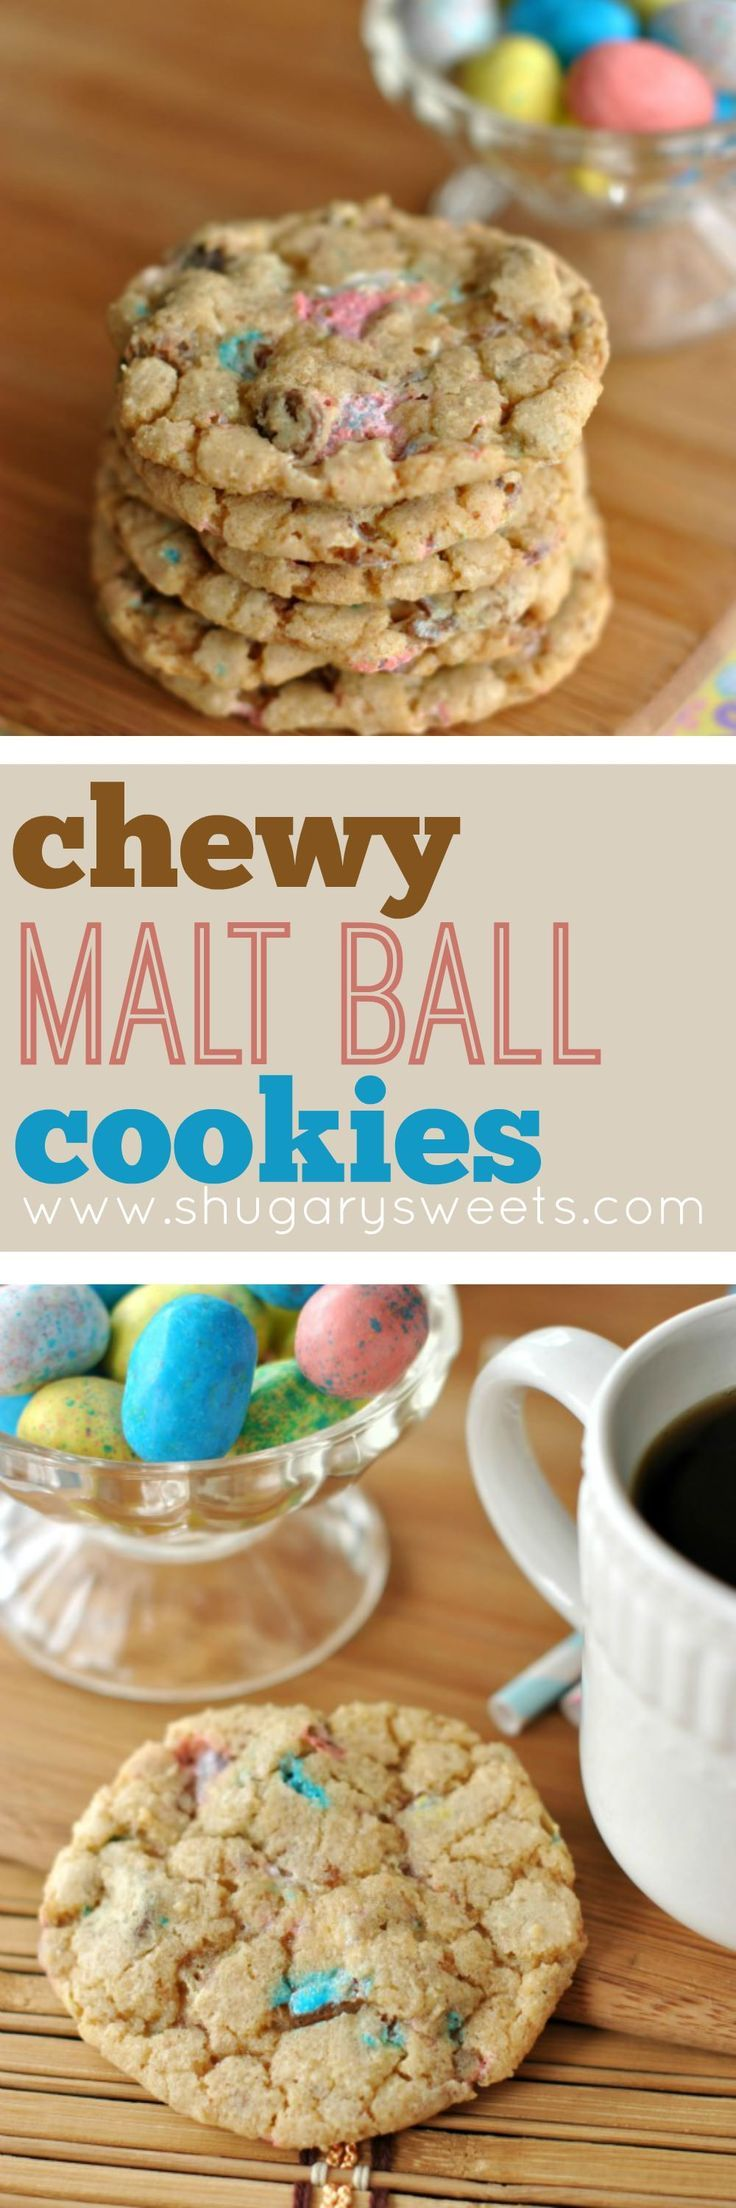 Delicious cookies made with Malted Milk Balls to create a chewy texture and malt ball flavor! Perfect with Whoppers or Spring Robin Eggs candies.